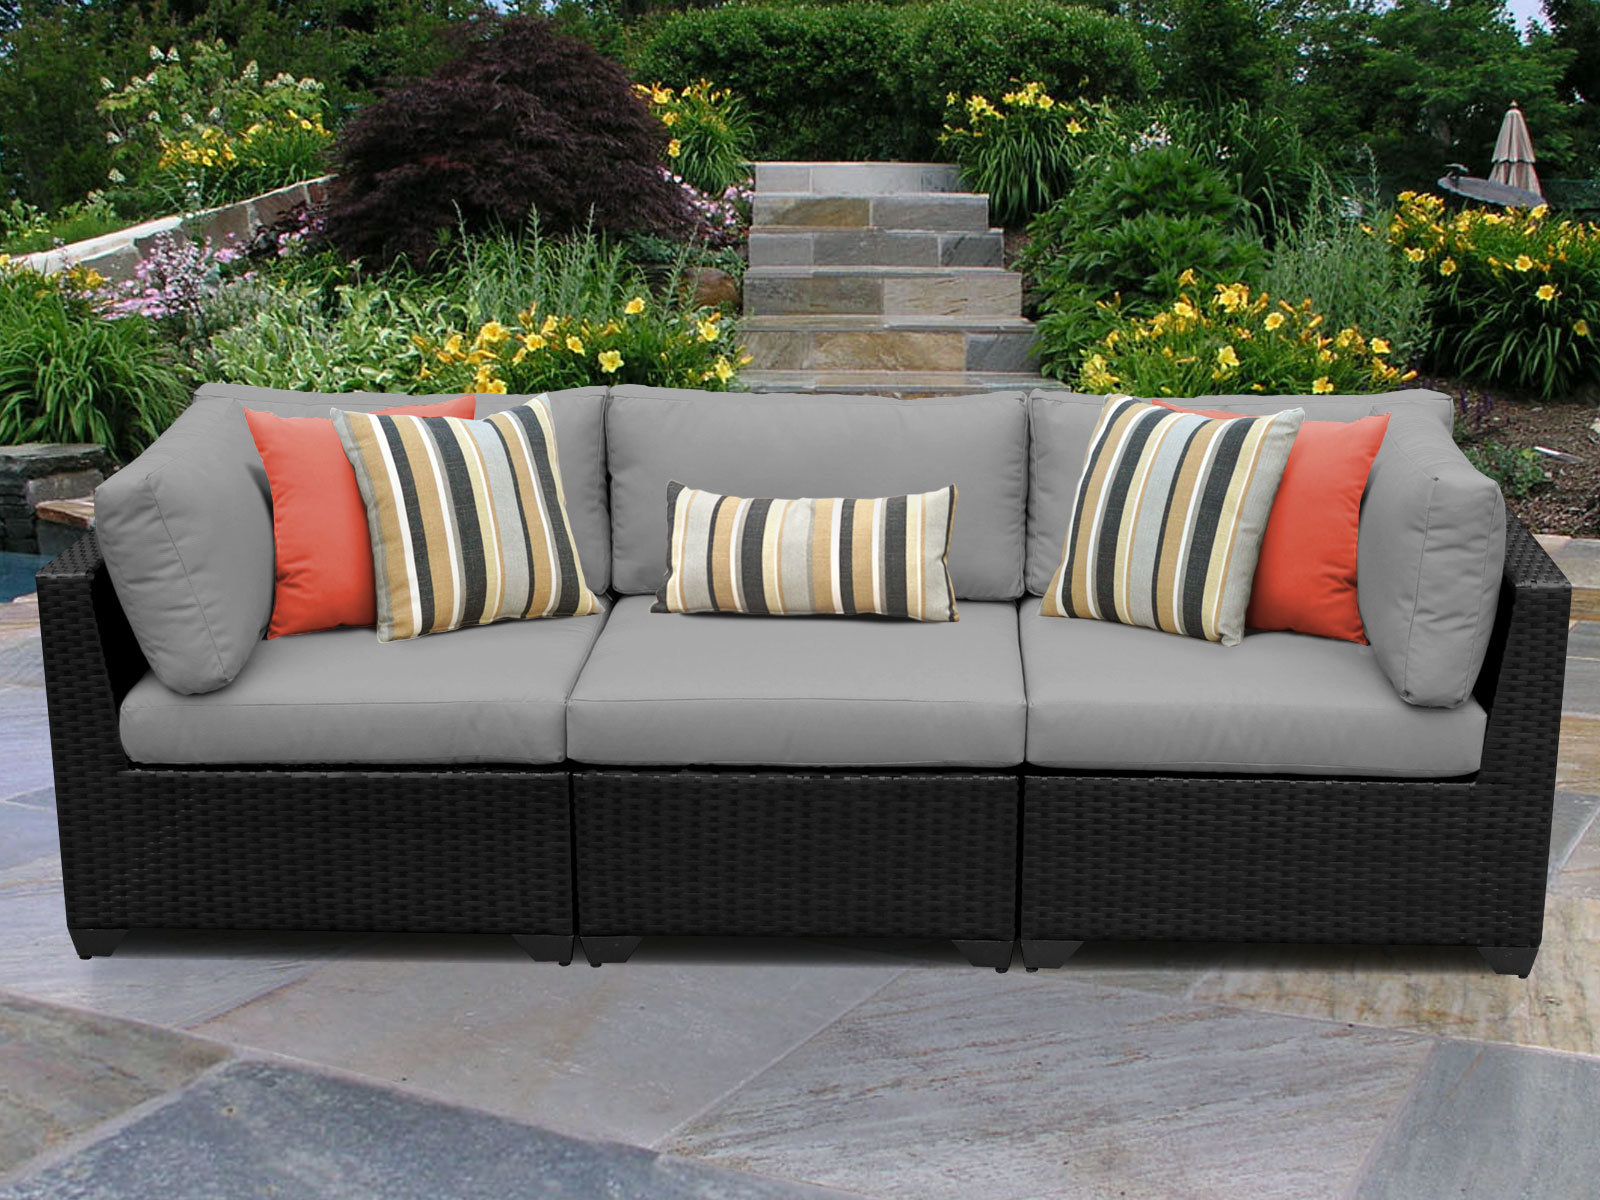 Camak Patio Sofas With Cushions Throughout Well Known Camak Patio Sofa With Cushions (View 6 of 20)